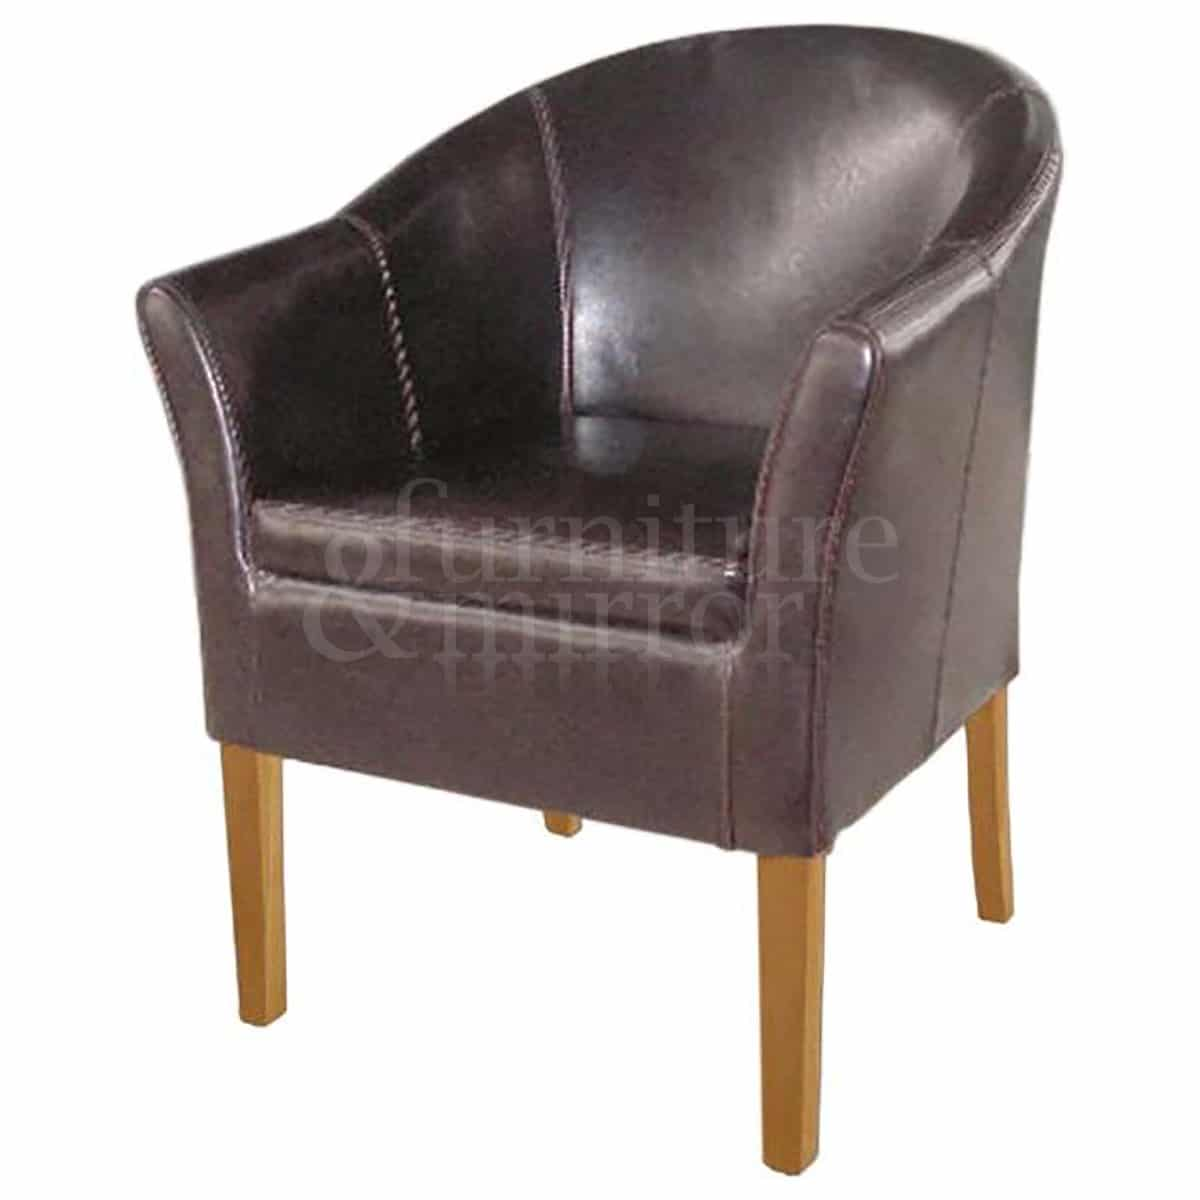 tub chair brown leather office carpet protector furniture and mirror